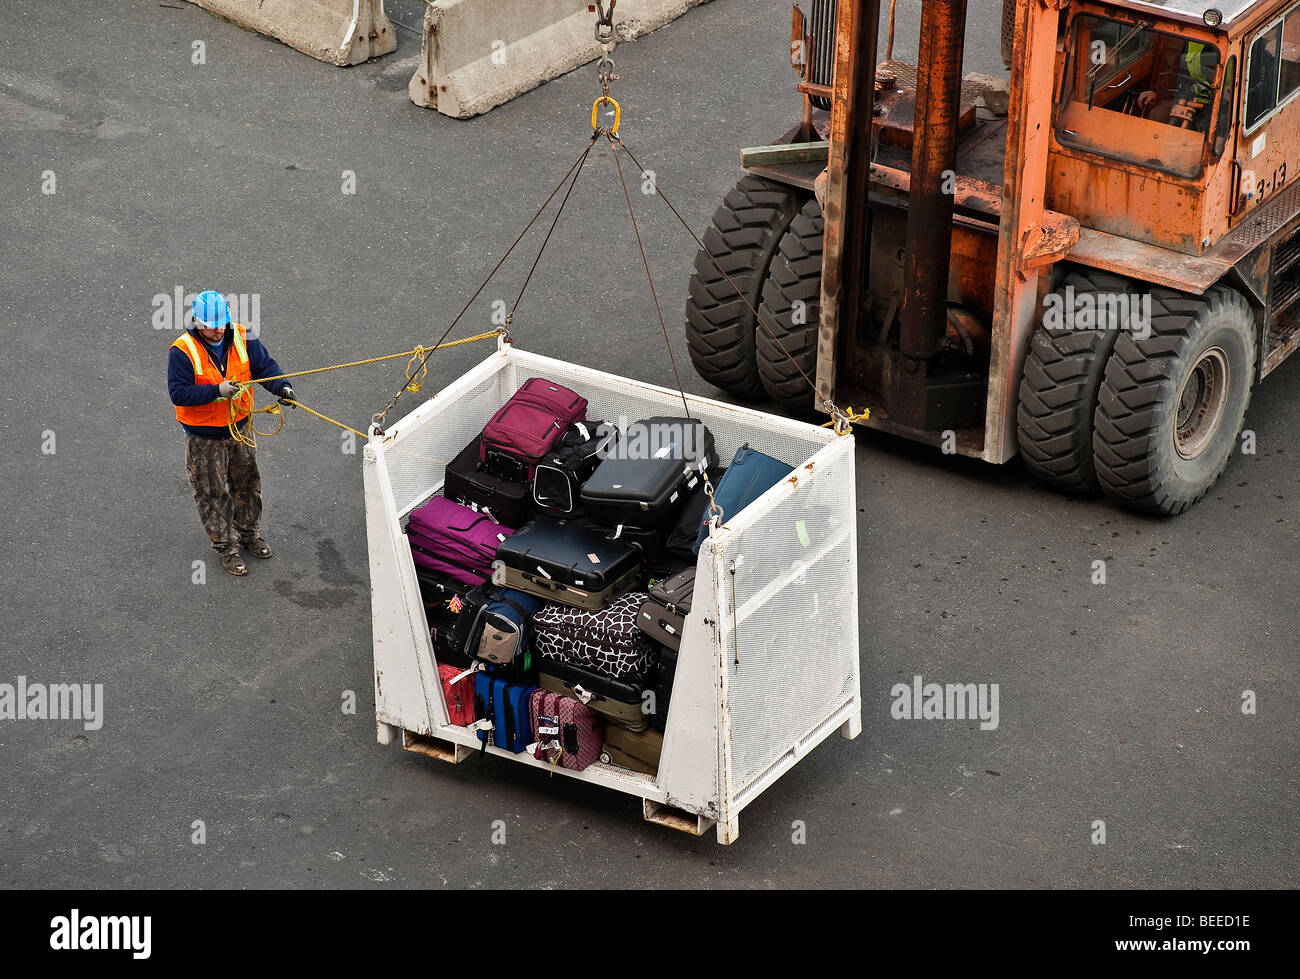 Baggage being loaded onto a cruise ship. - Stock Image